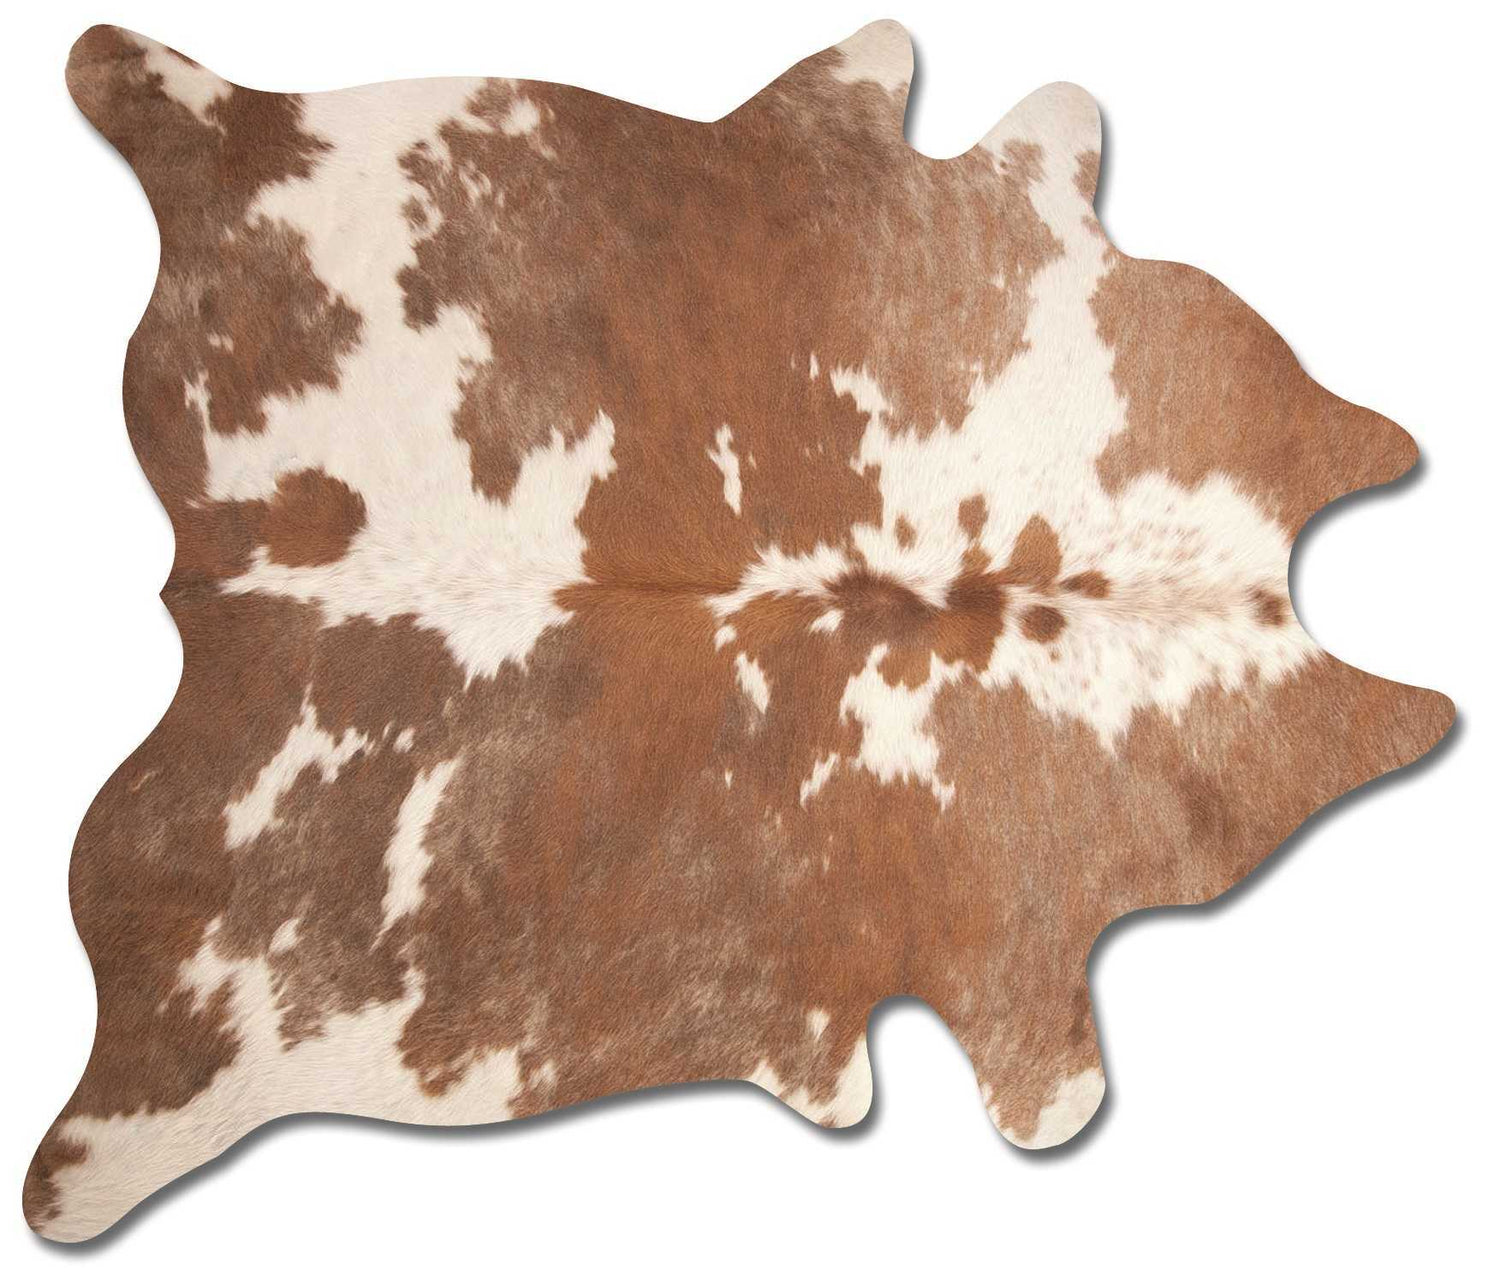 Kobe 6' X 7'  Genuine Brazilian Cowhide Rug - Brown & White